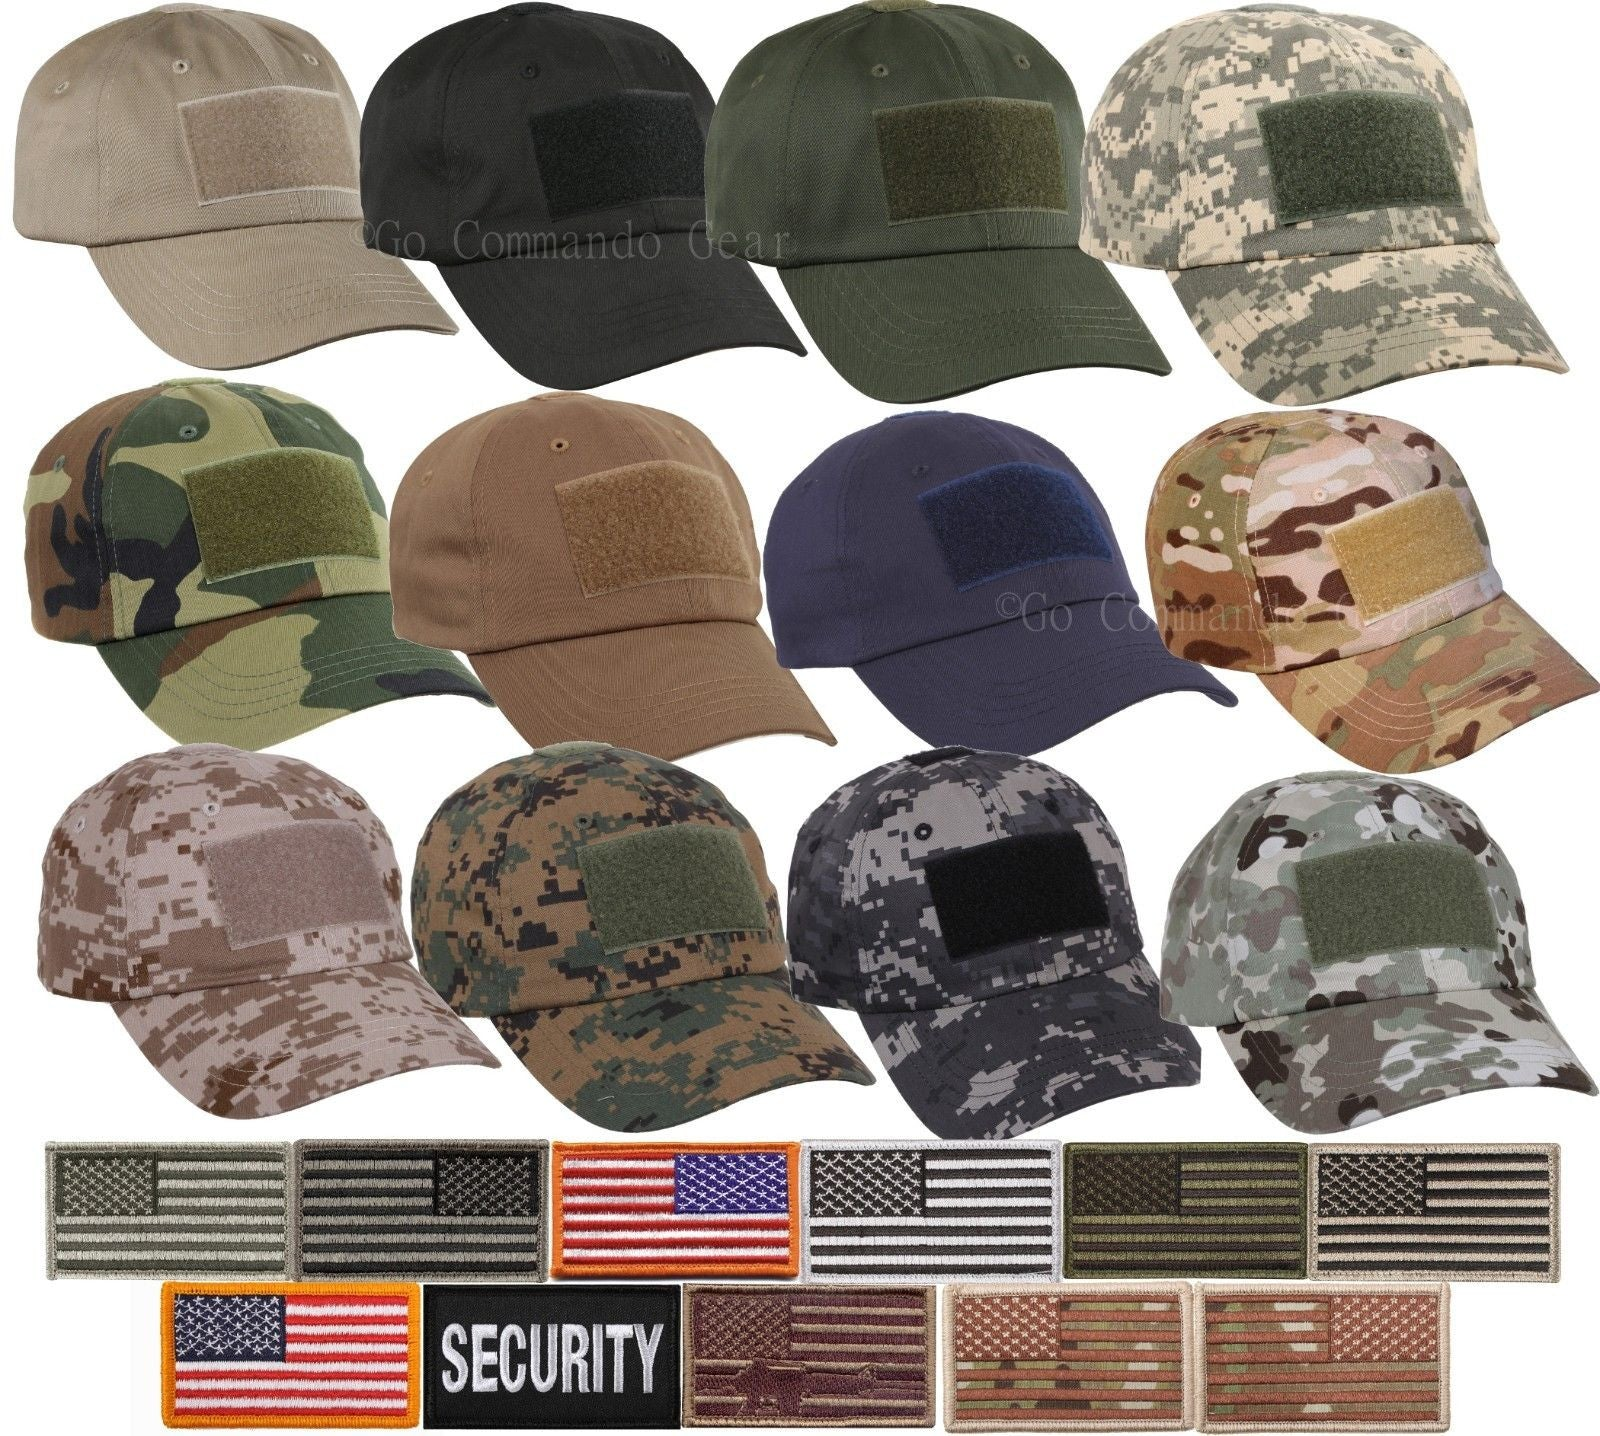 18d97c25d22 Special Forces Operator Tactical Cap Hat w Patch – Grunt Force